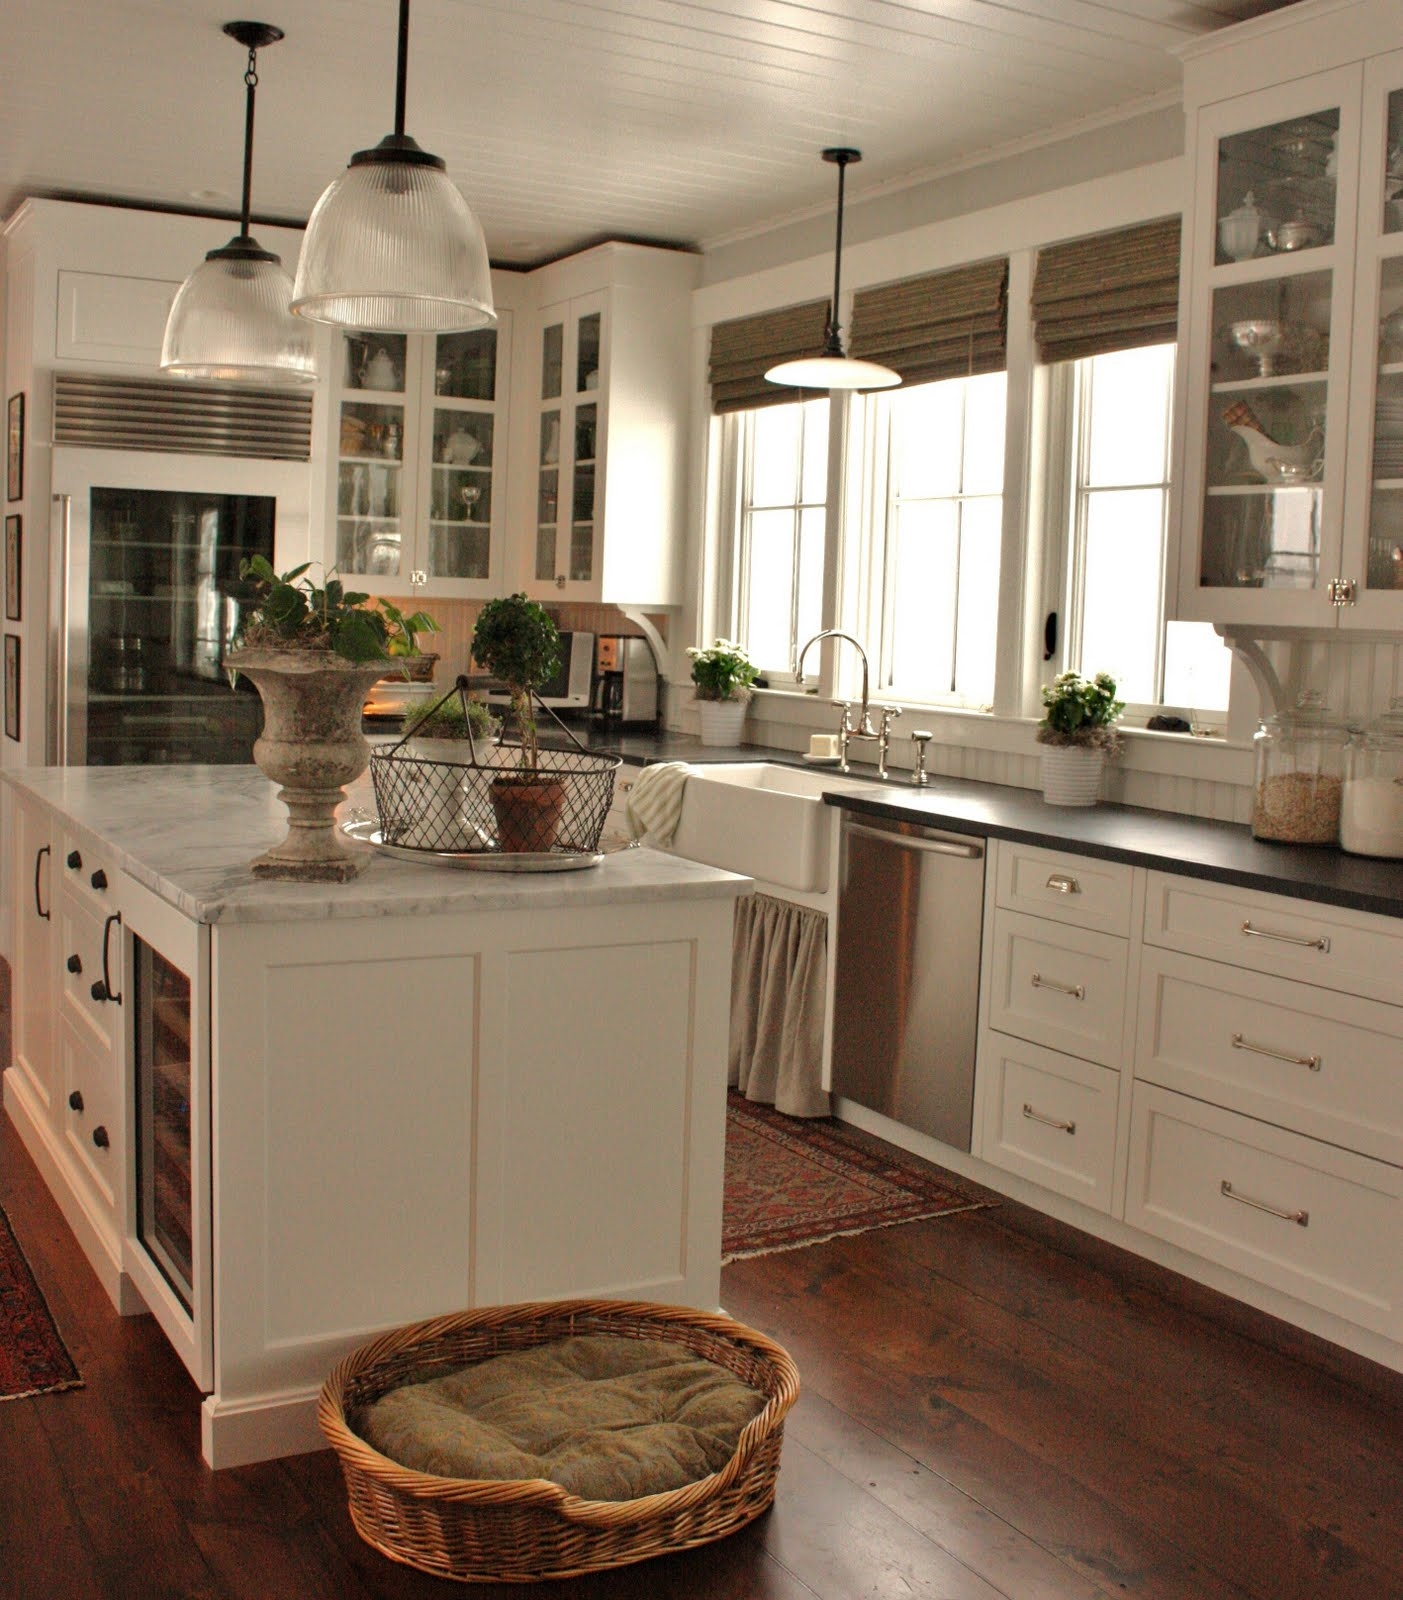 Permalink to White Farmhouse Kitchen Cabinets